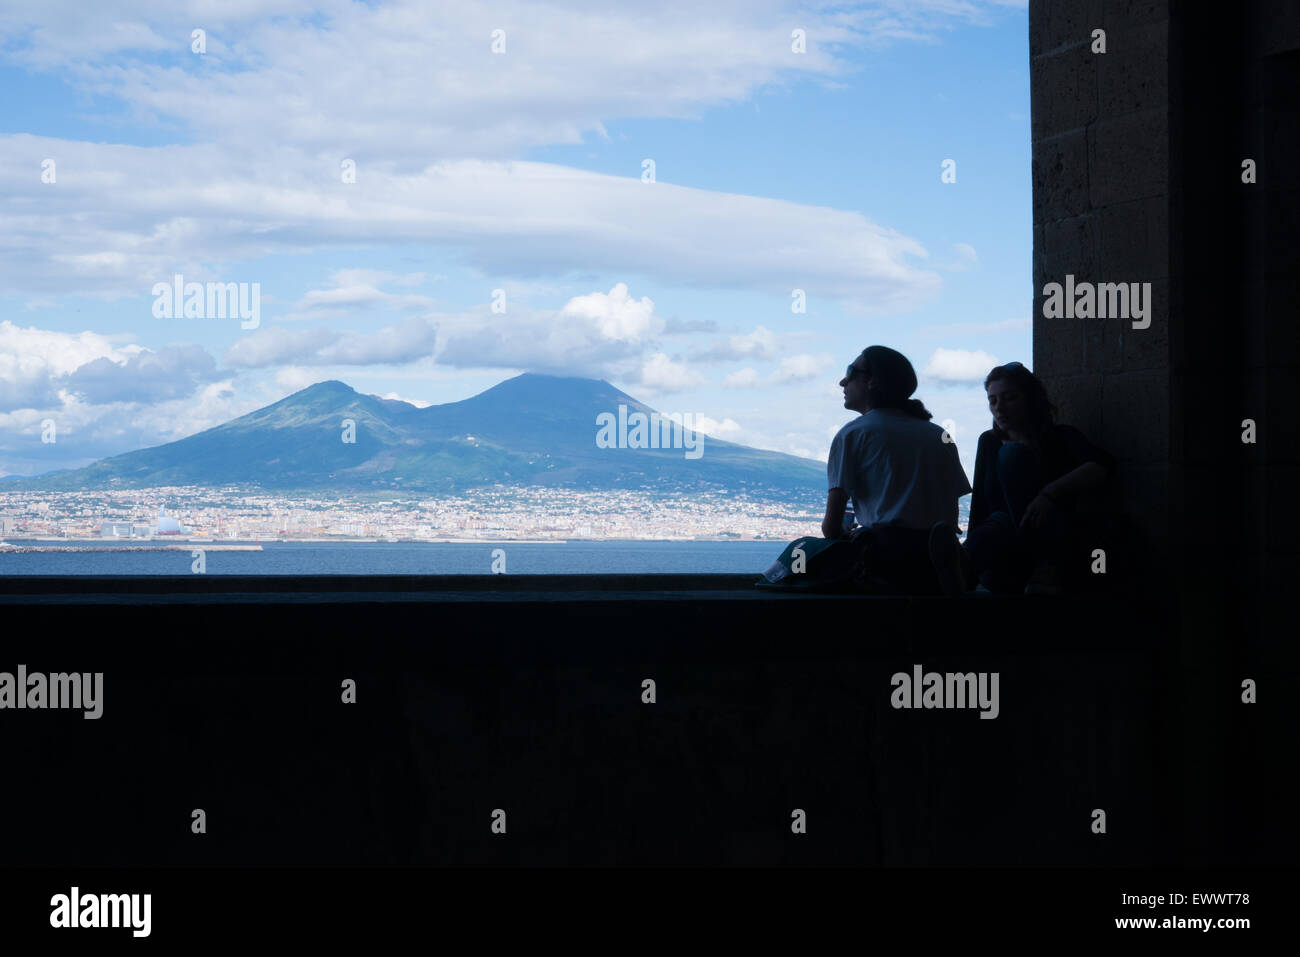 View of the mount Vesuvius and the Gulf of Naples from Castel dell'Ovo - Stock Image